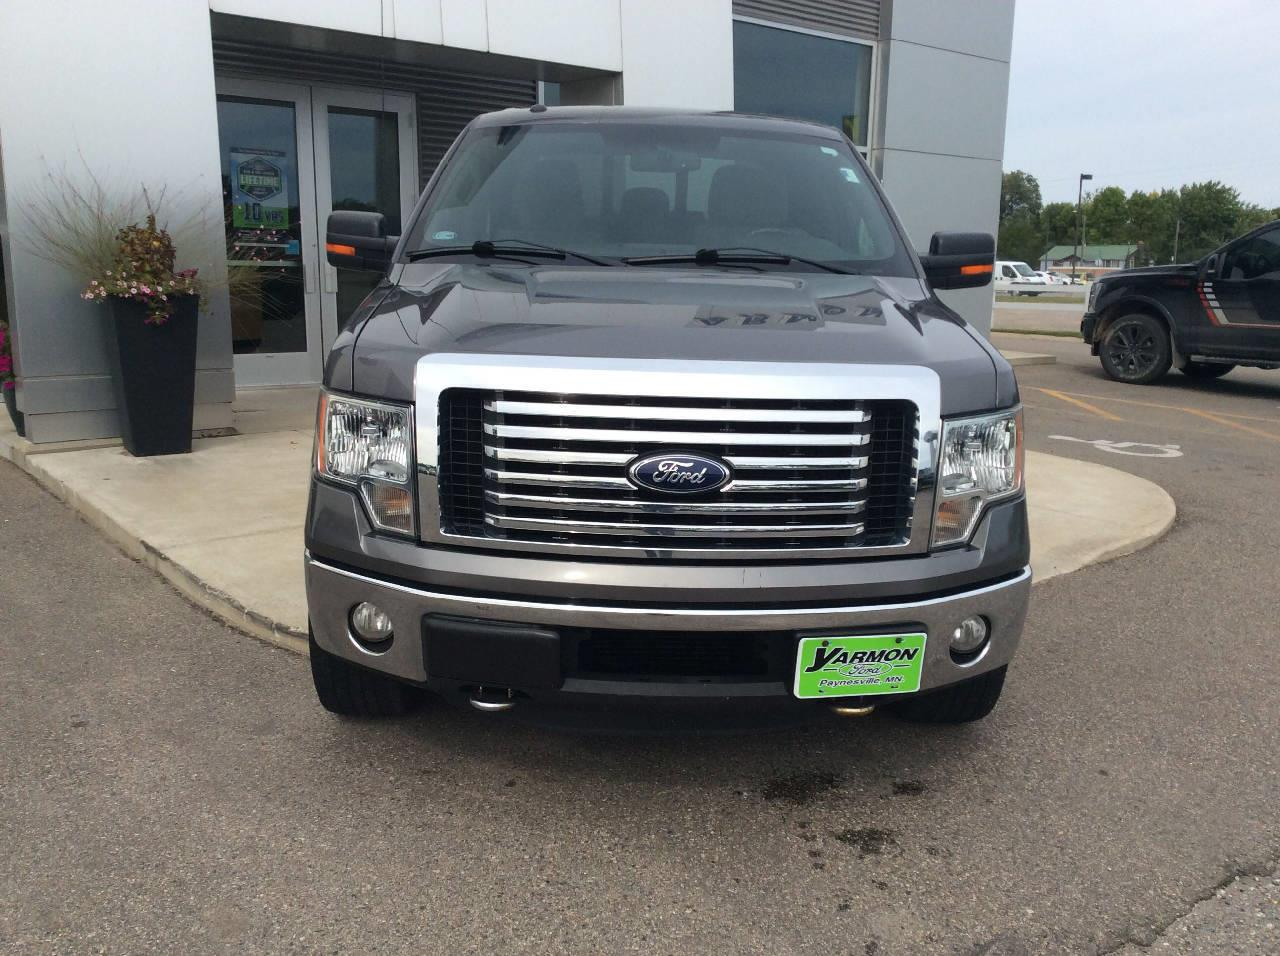 Used 2012 Ford F-150 FX4 with VIN 1FTFW1ET4CKD58051 for sale in Paynesville, Minnesota